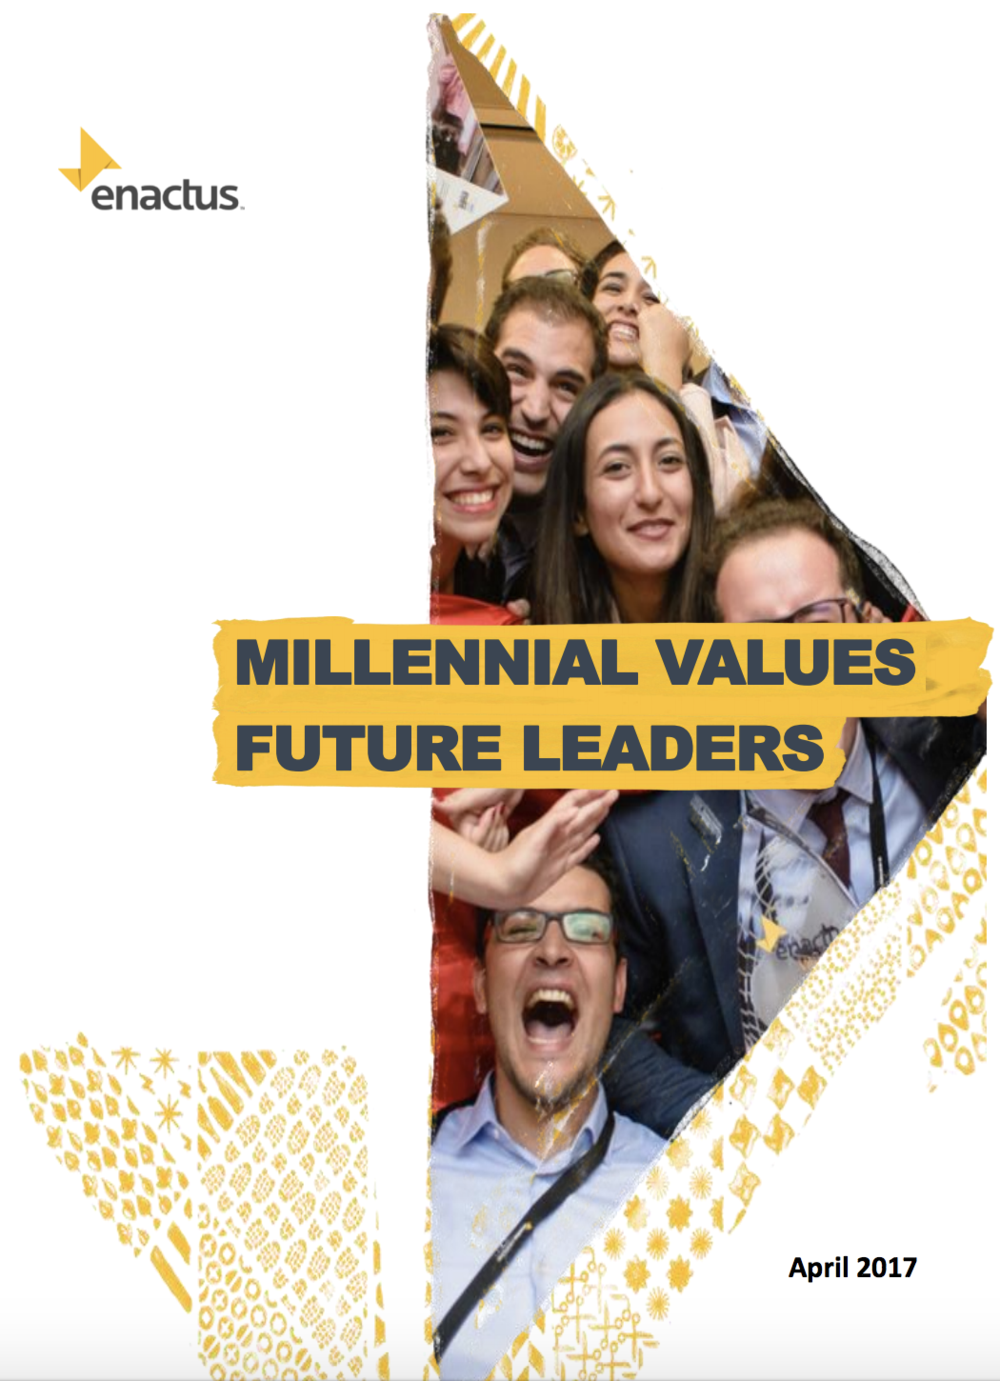 Enactus Values - Future Leaders